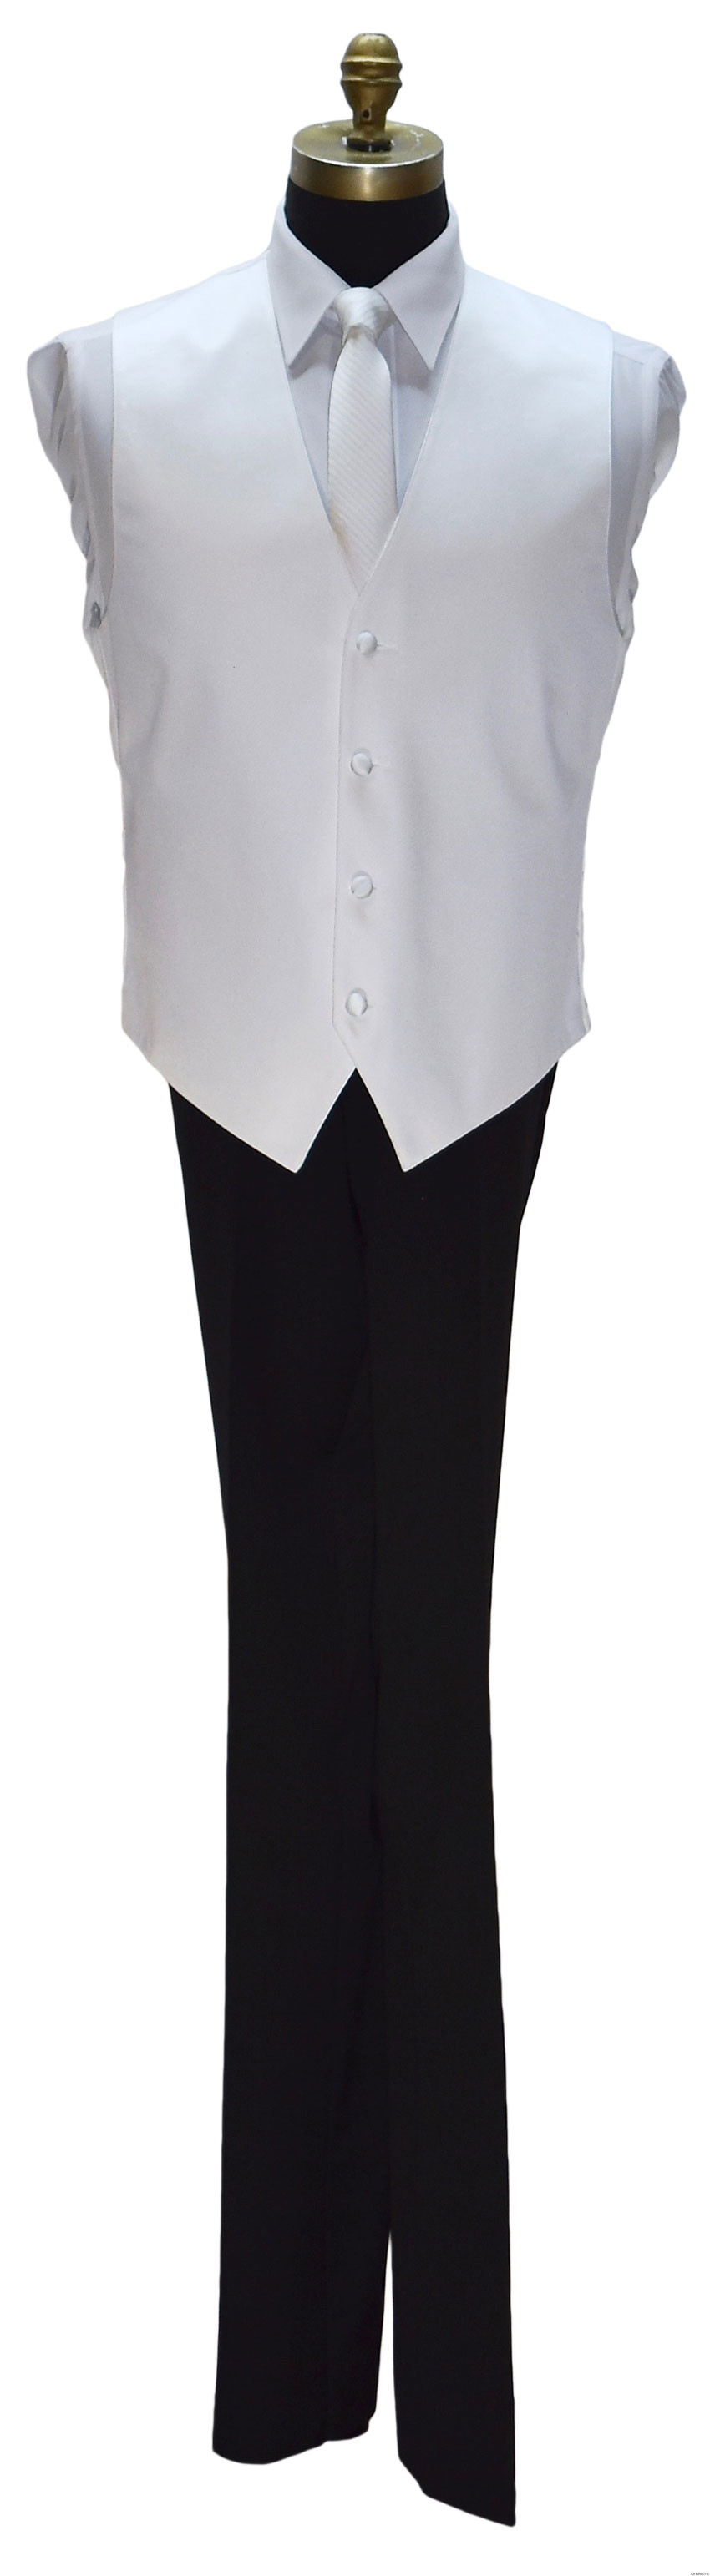 skinny white long tie with white vest by San Miguel Formals